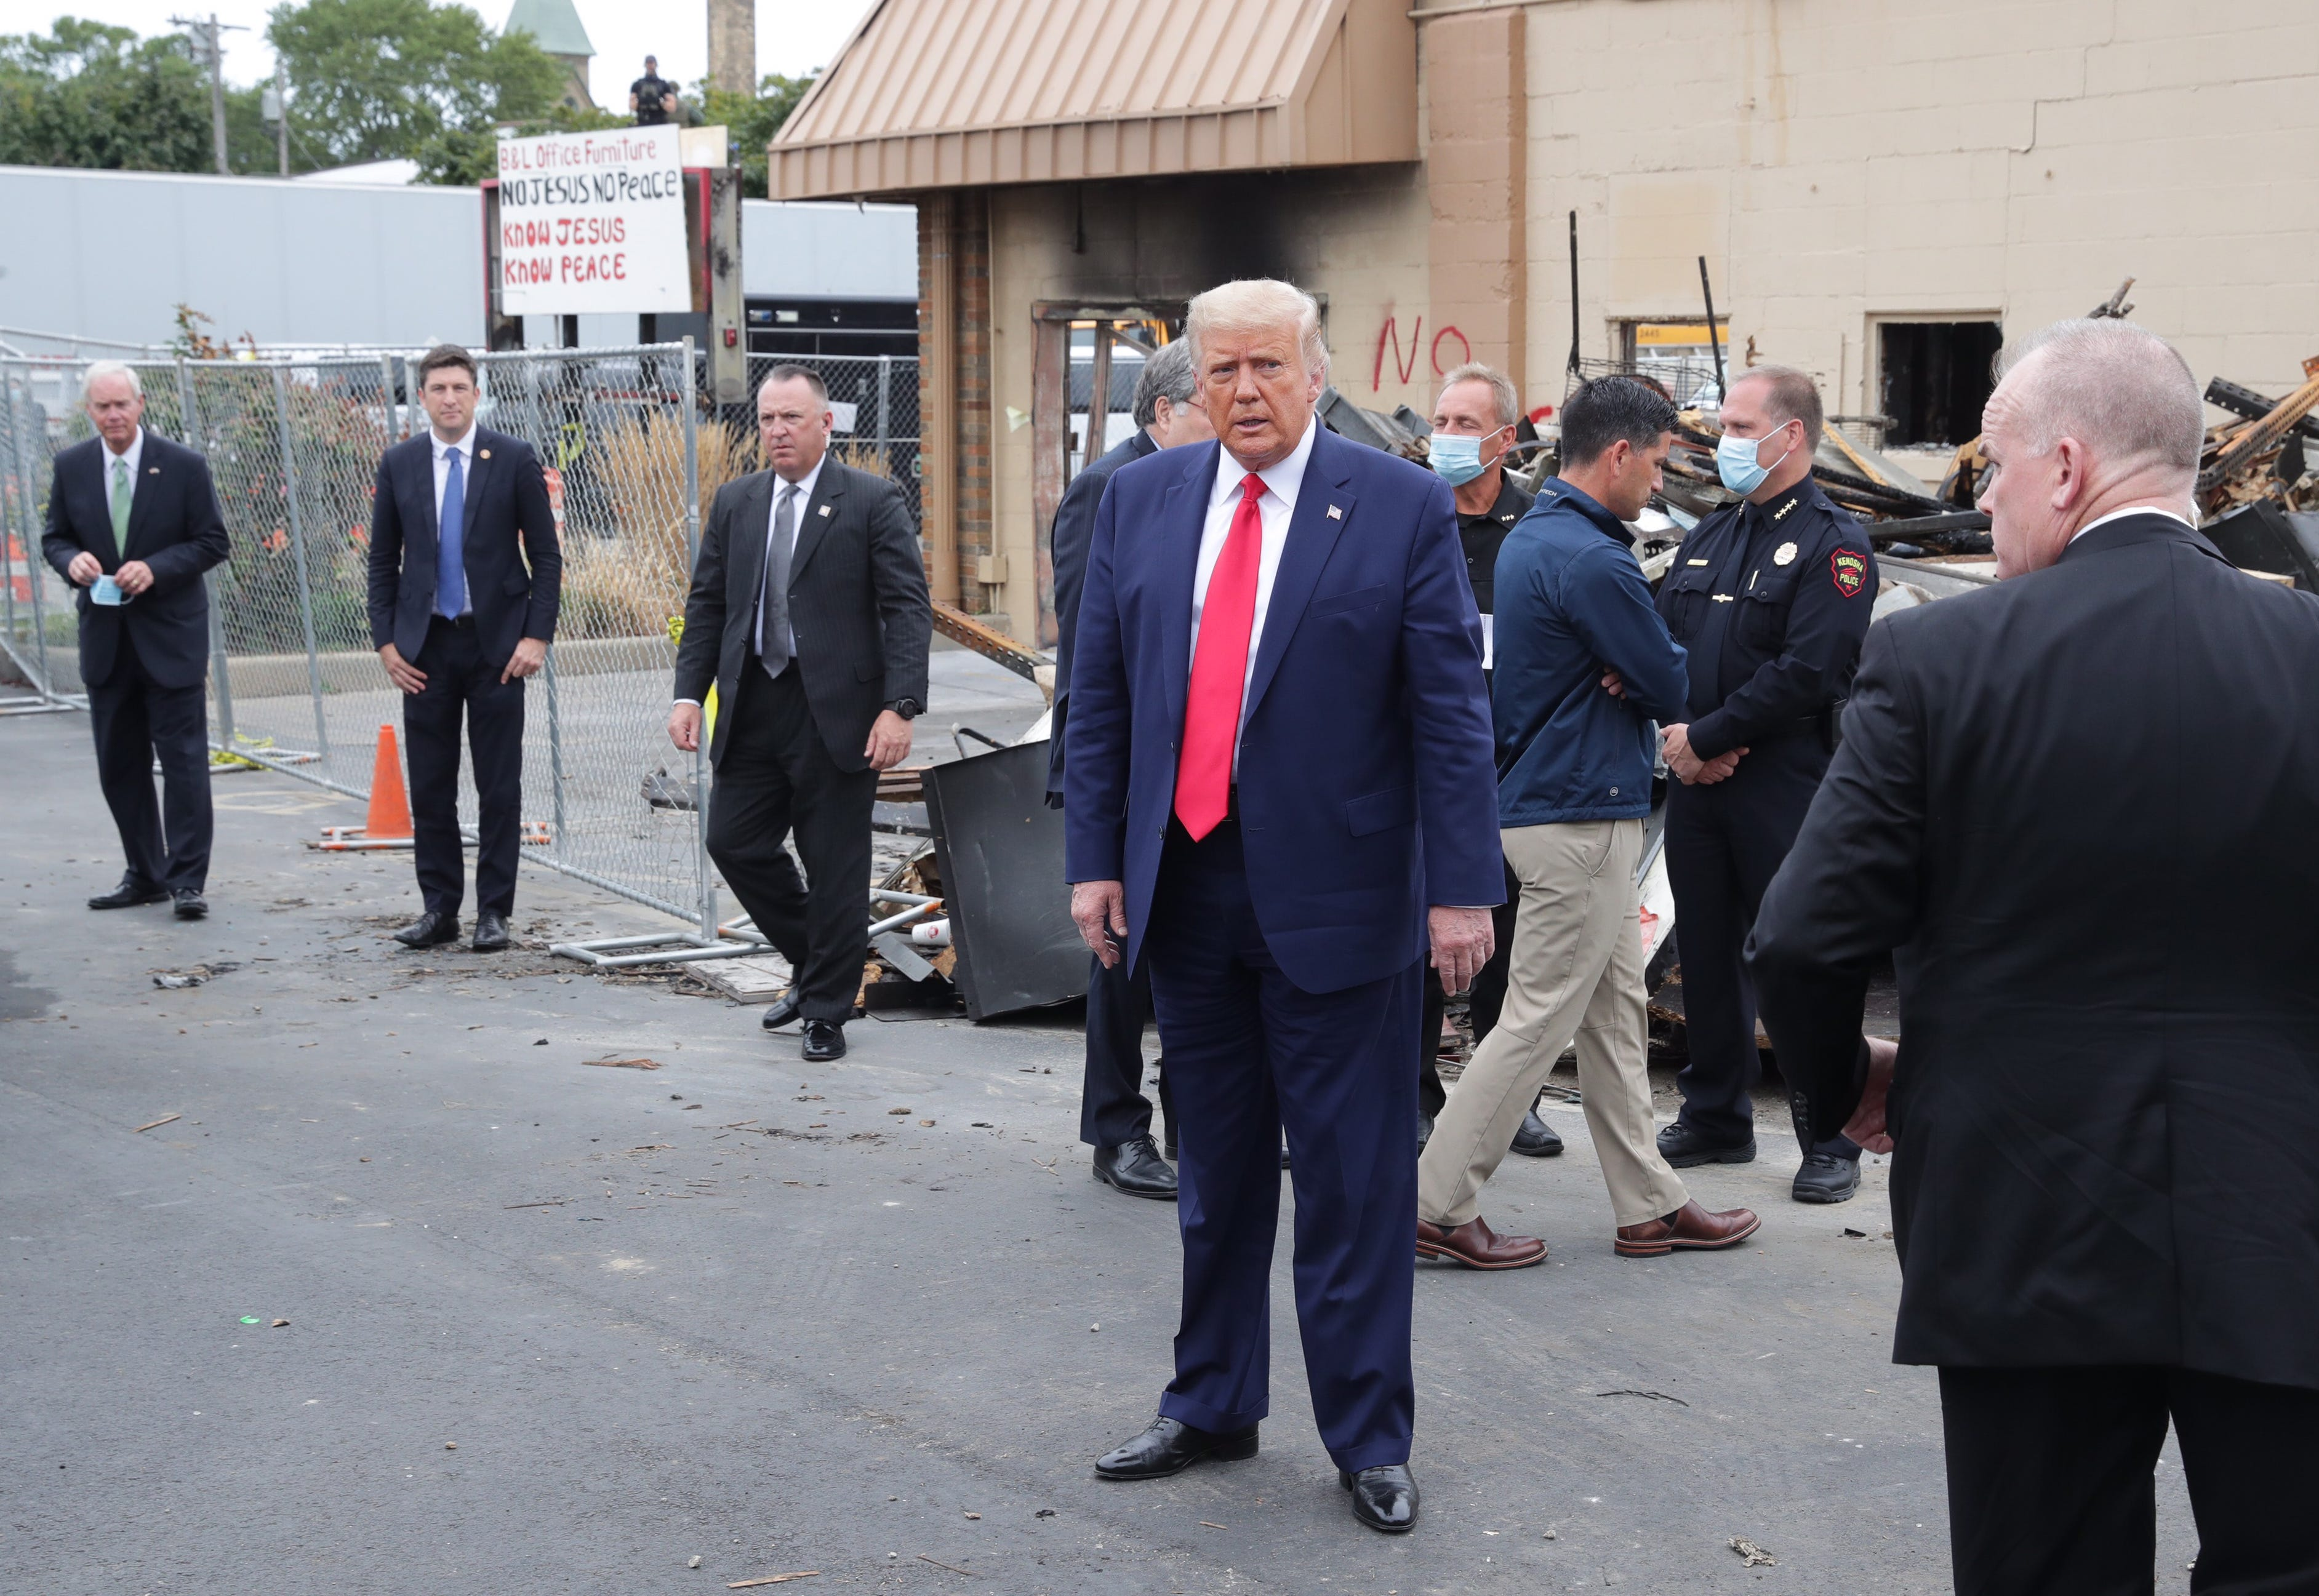 President Donald Trump inspects the remains of B&L Office Furniture on Tuesday, Sept. 1, 2020, in Kenosha, Wis.